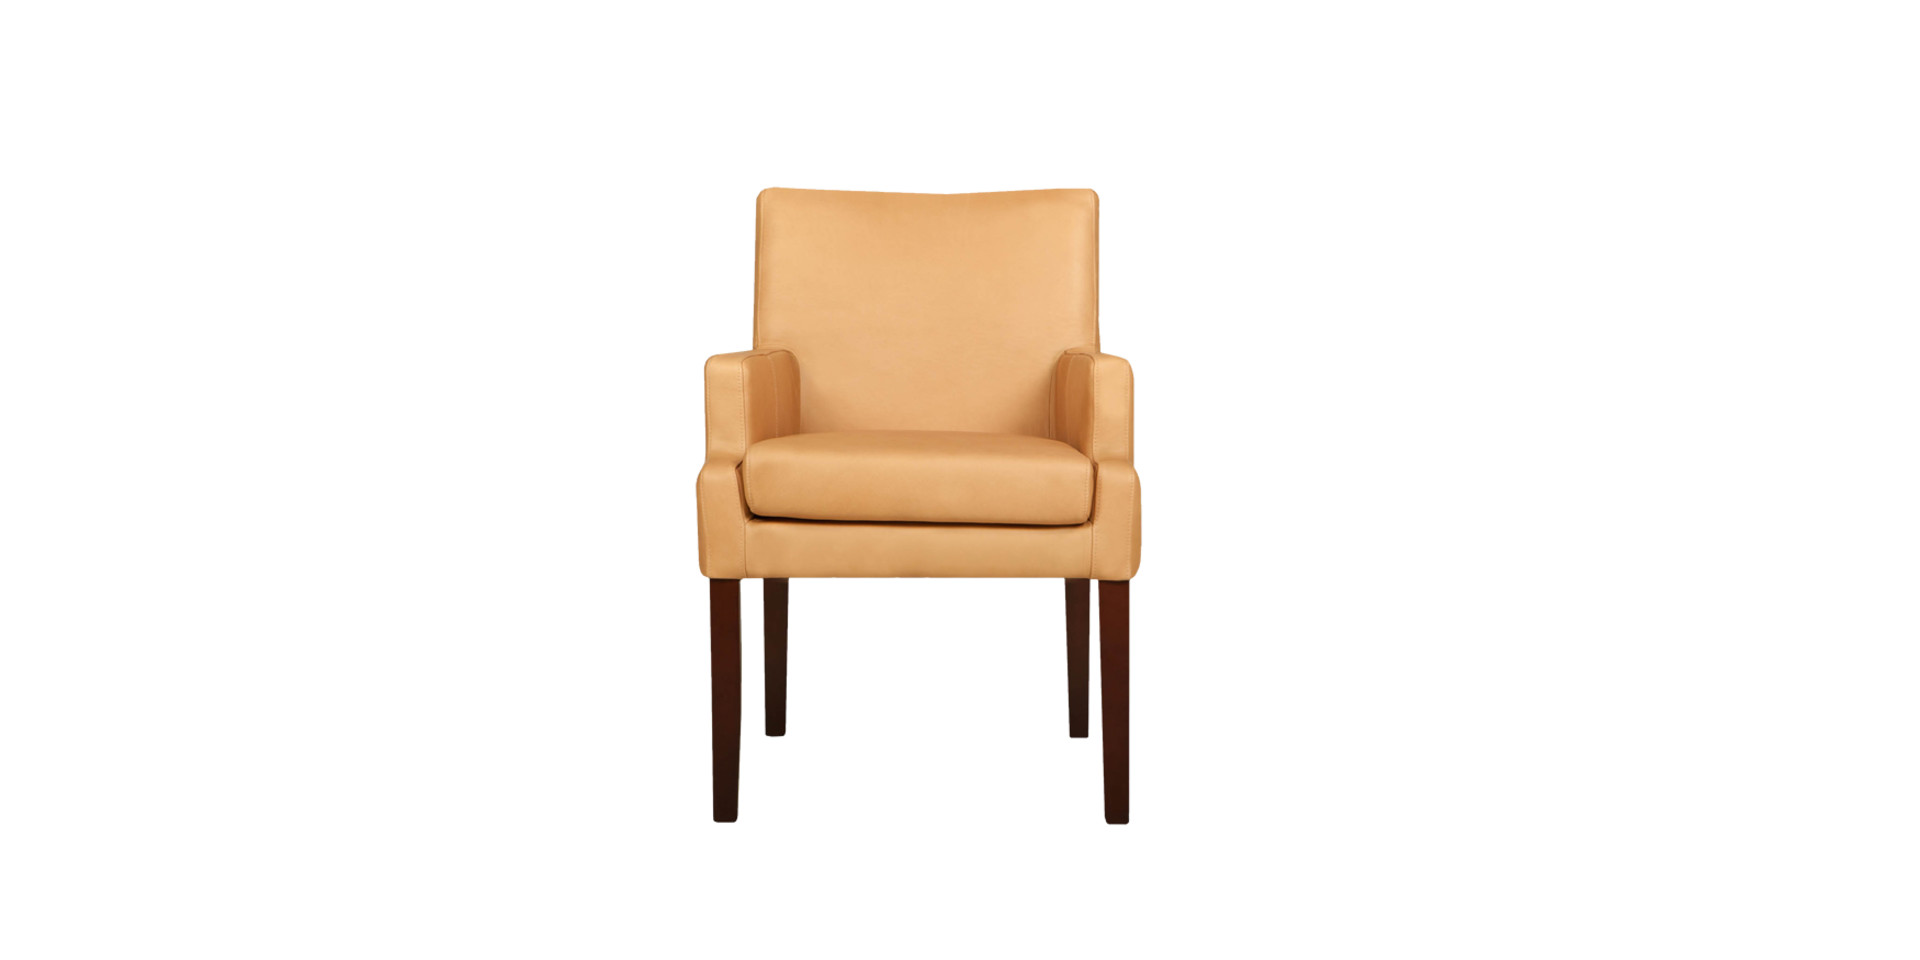 sits-merlin-fauteuil-chair_aniline_latte_1